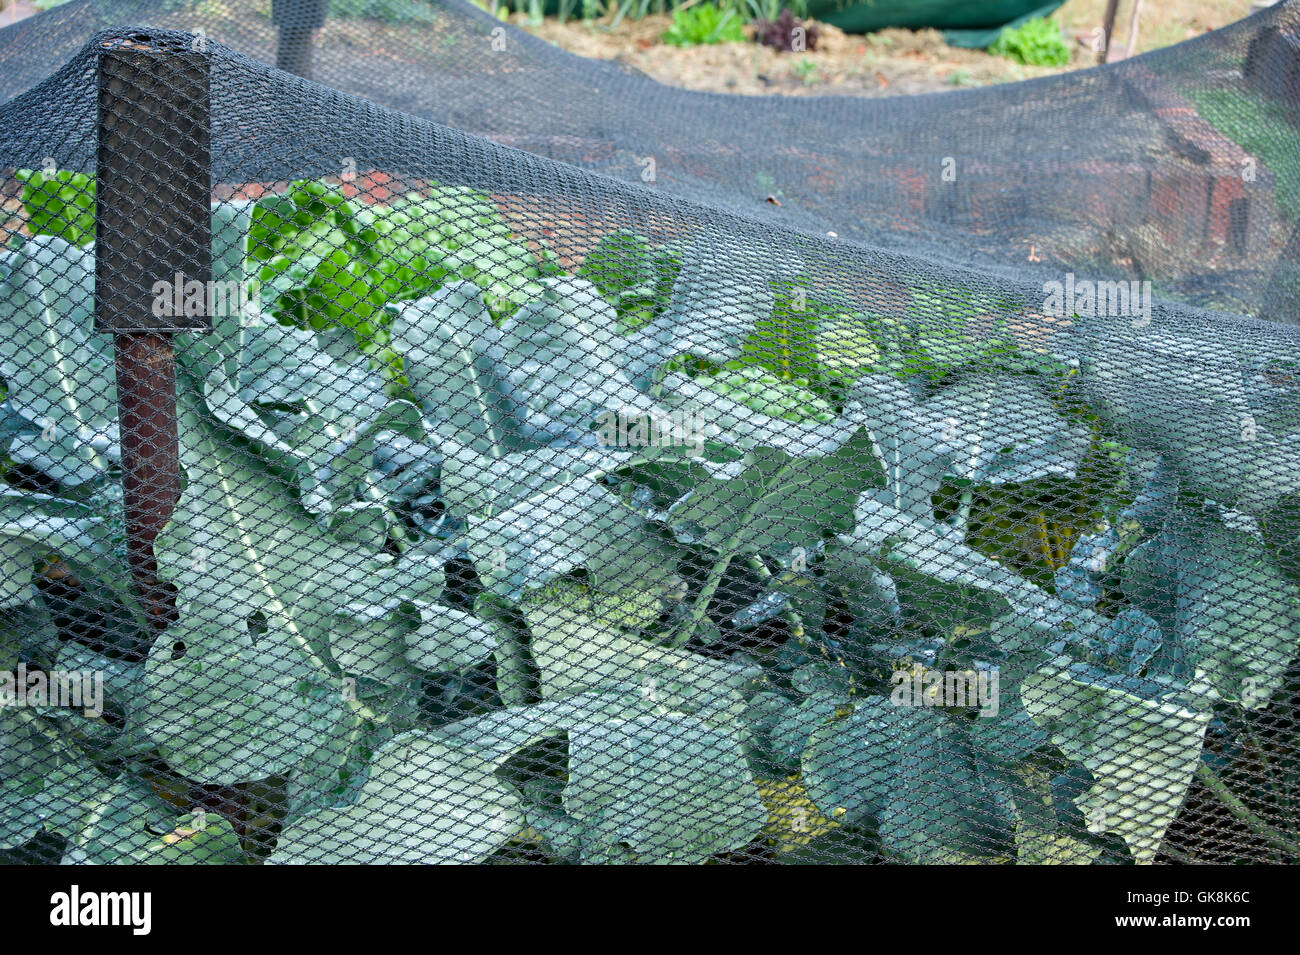 Butterfly netting covering brassicas to prevent cabbage white butterfly damage - Stock Image